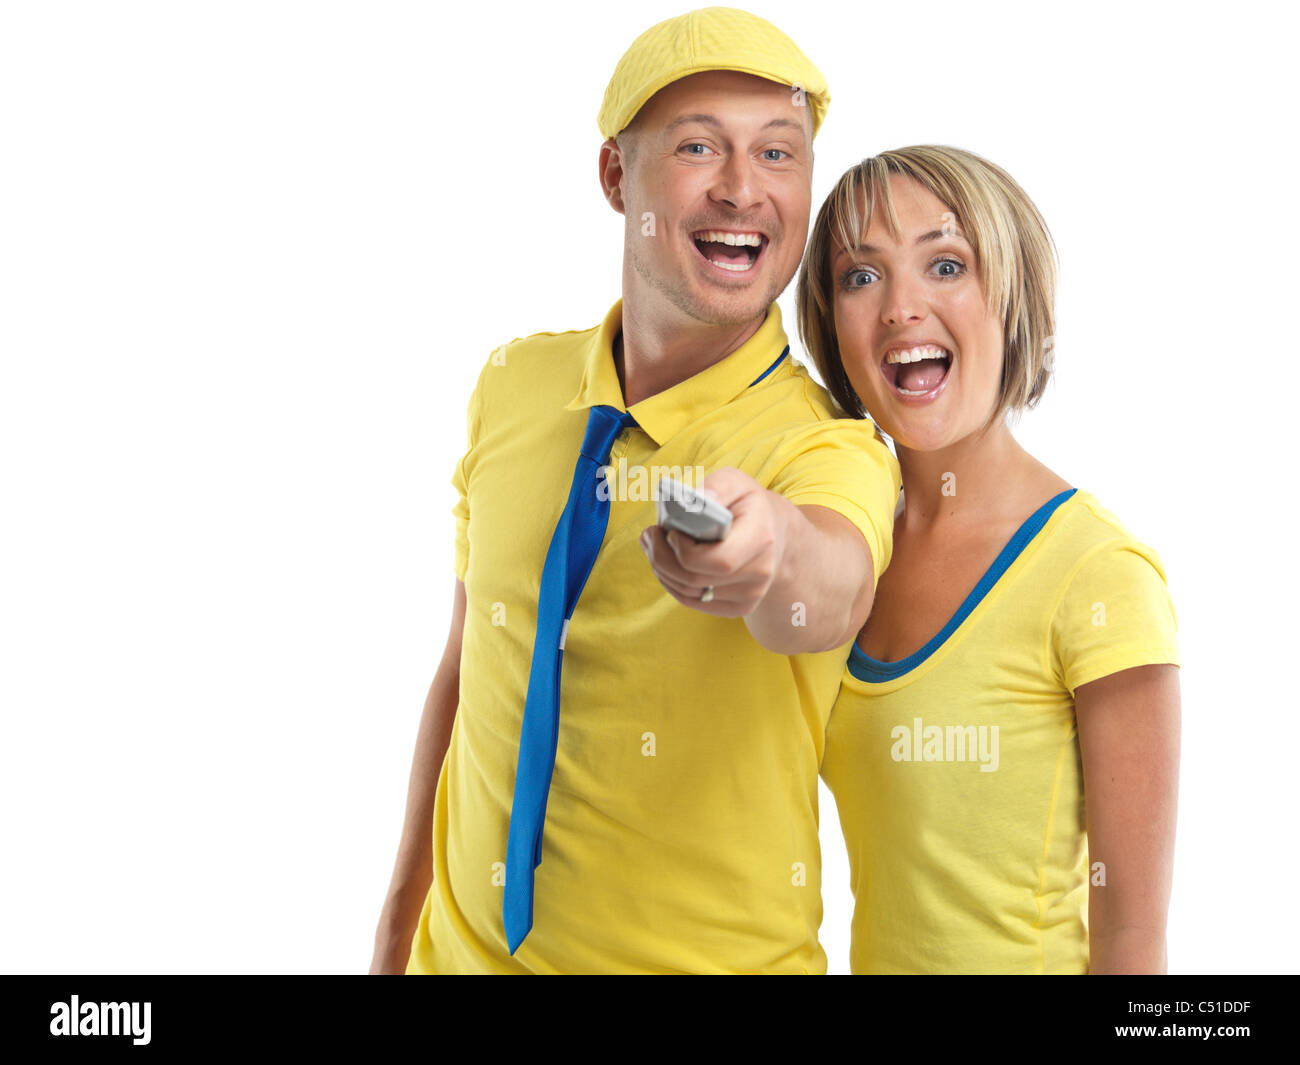 Laughing young couple with a TV remote control. Isolated on white background. - Stock Image